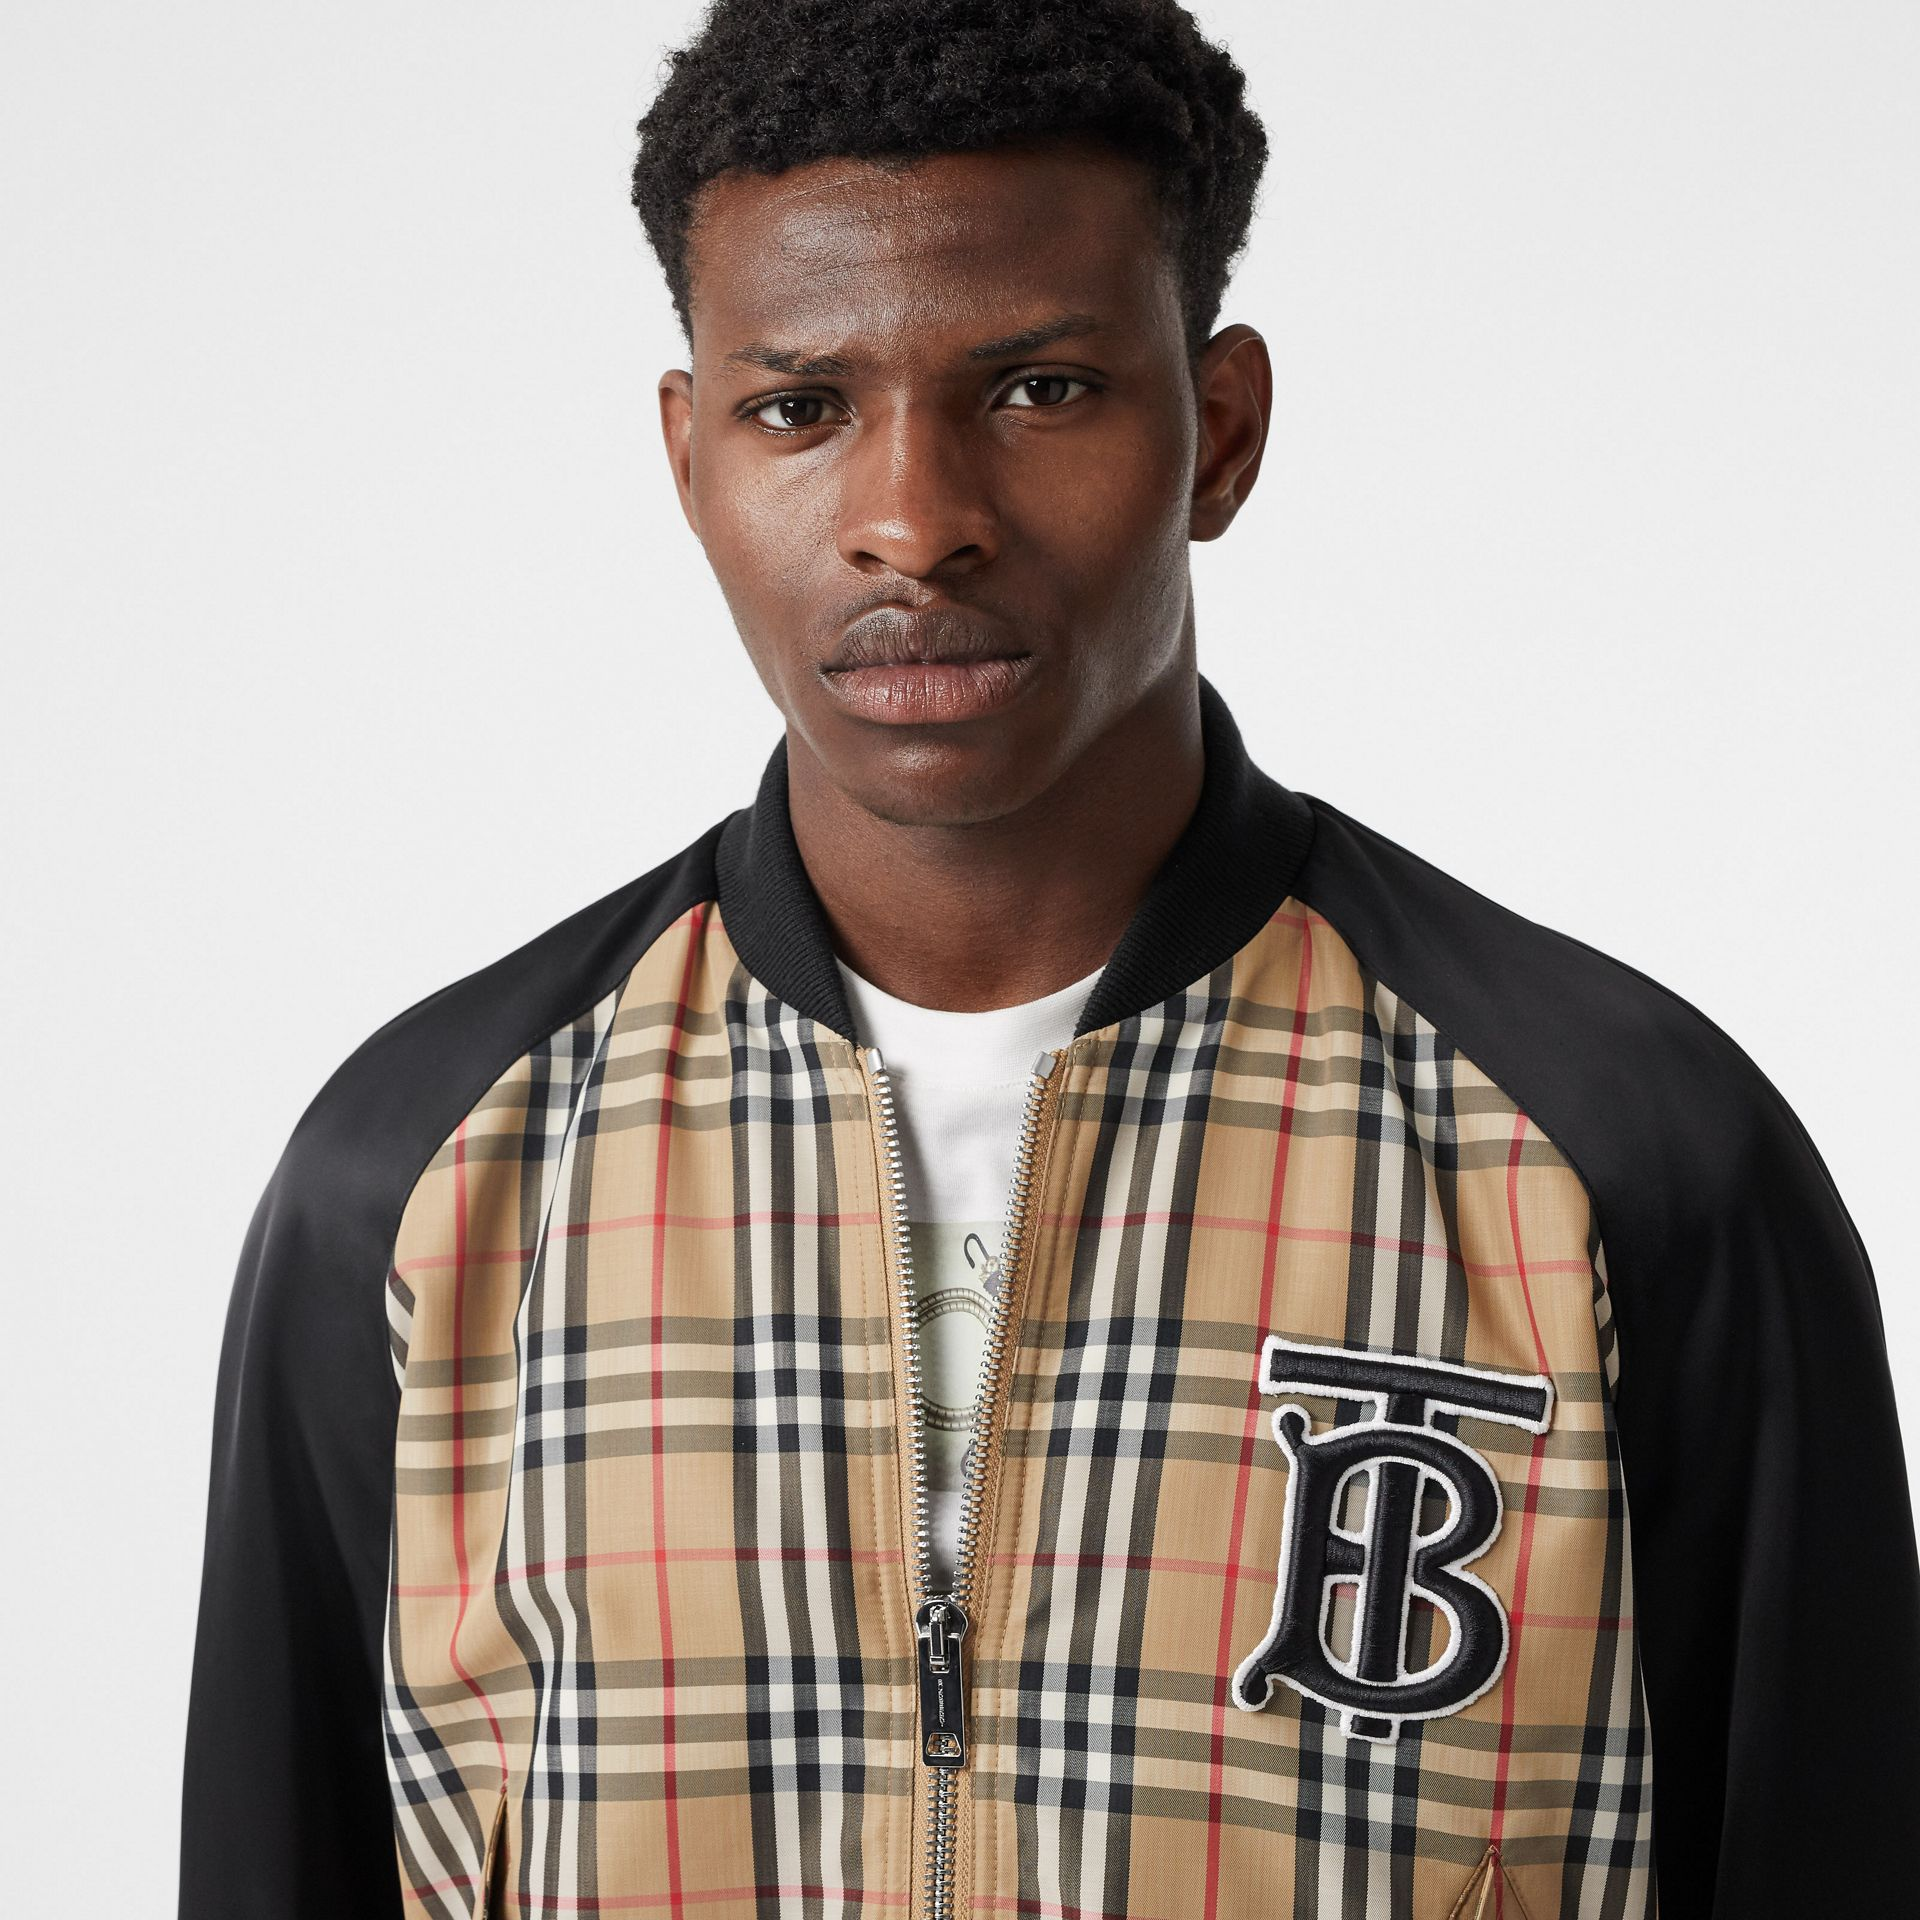 Monogram Motif Vintage Check Nylon Bomber Jacket in Archive Beige - Men | Burberry - gallery image 4